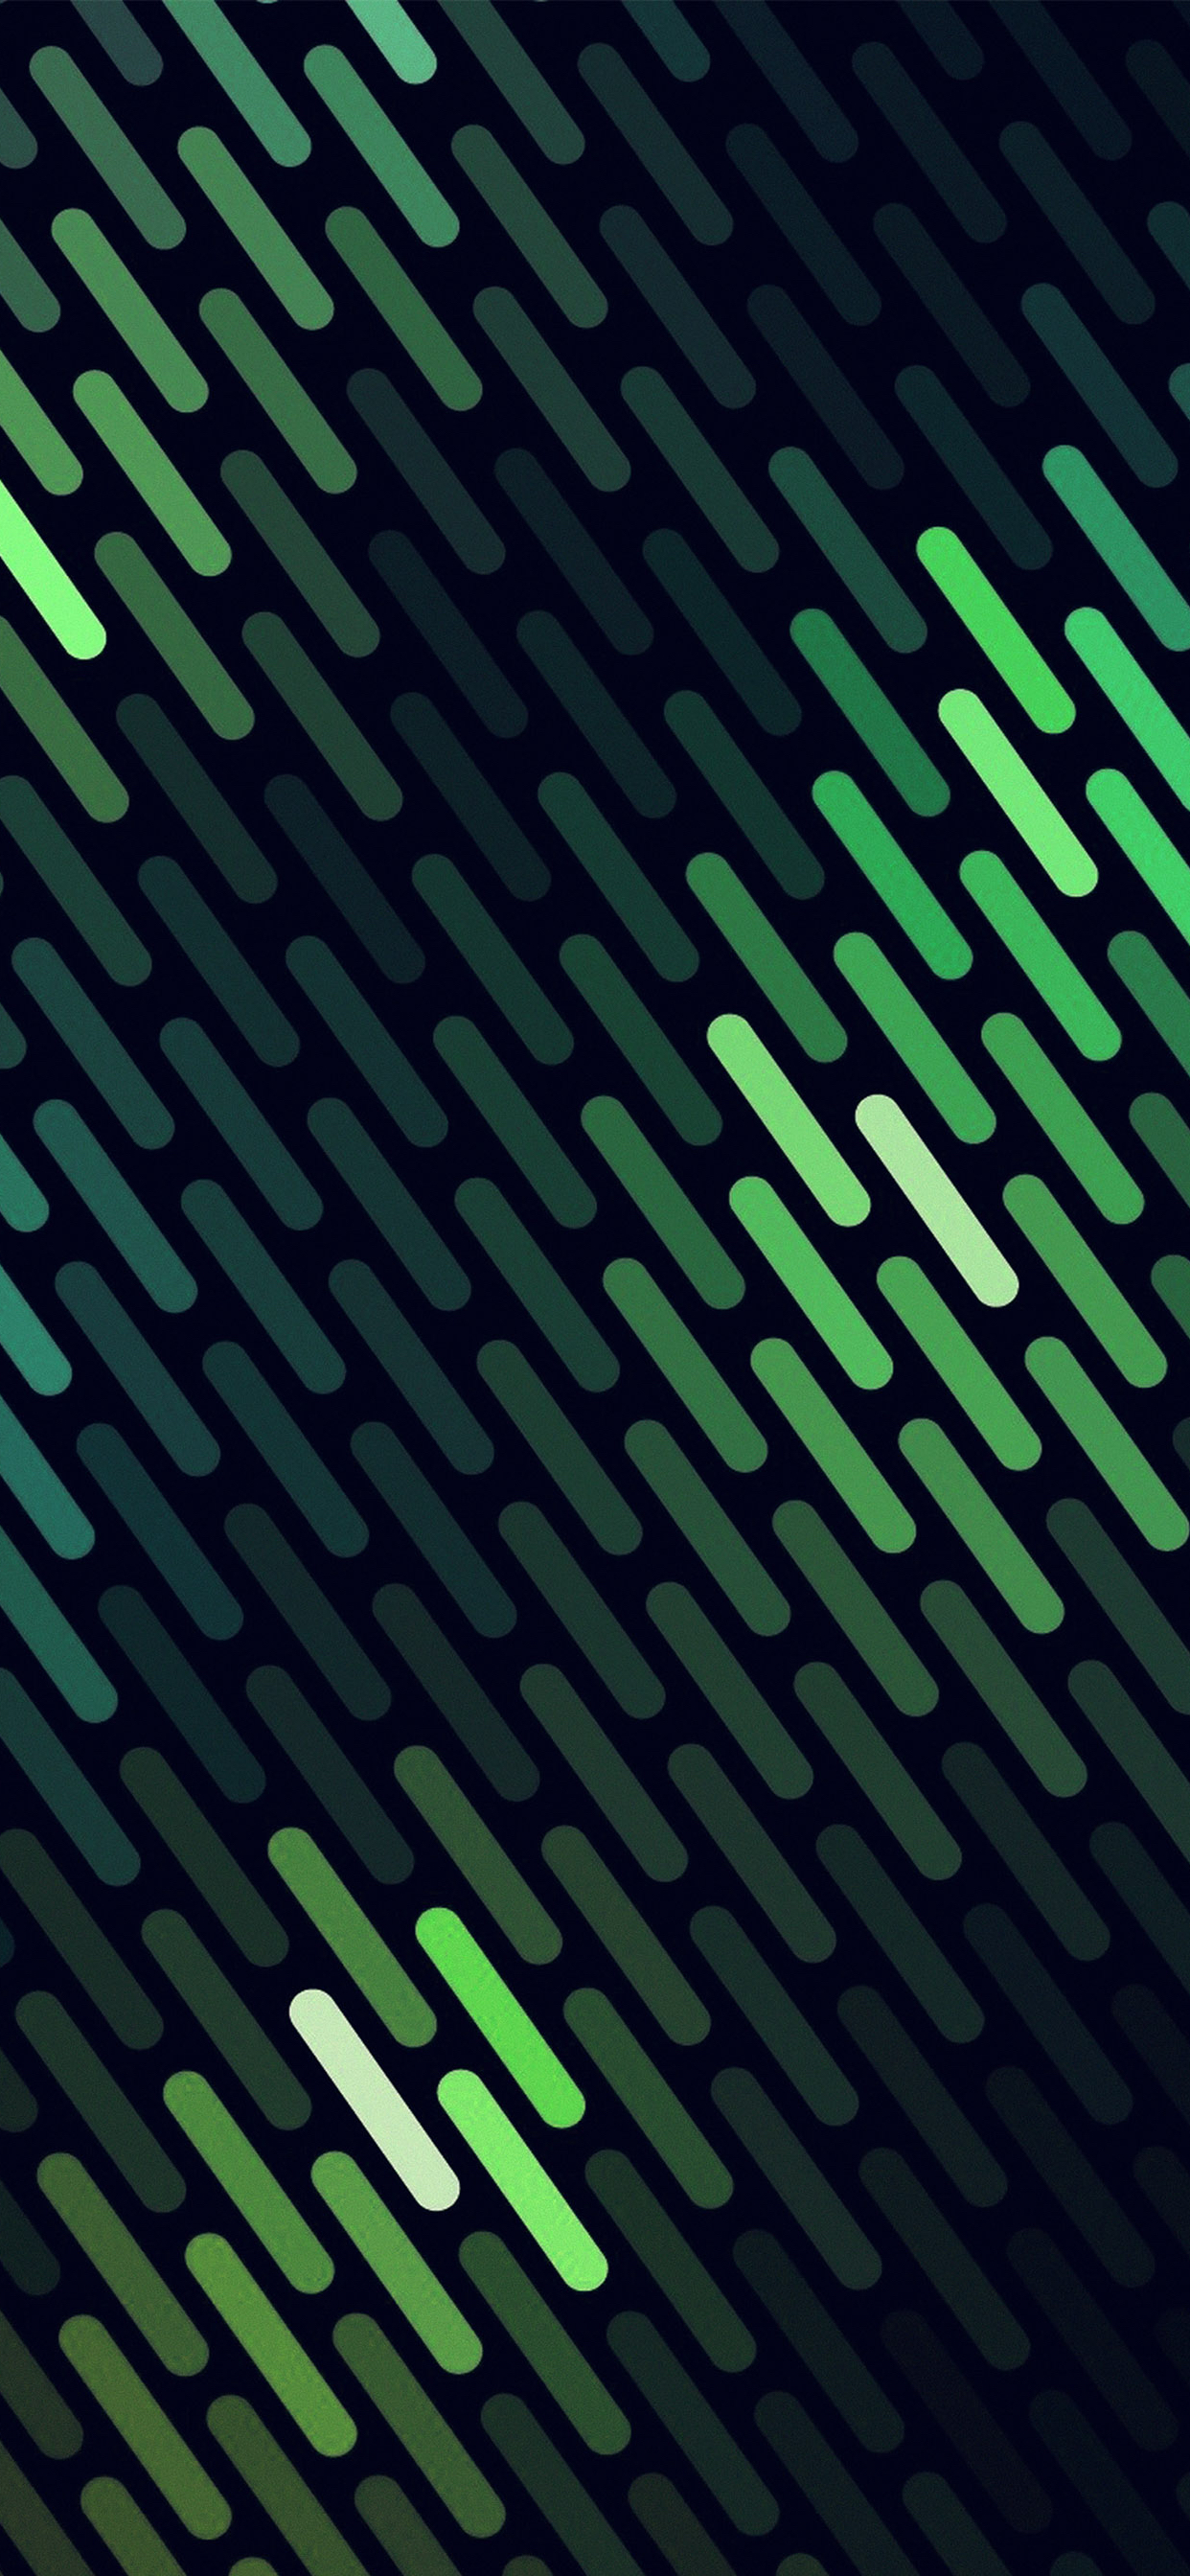 iPhone wallpaper green dots lines Green